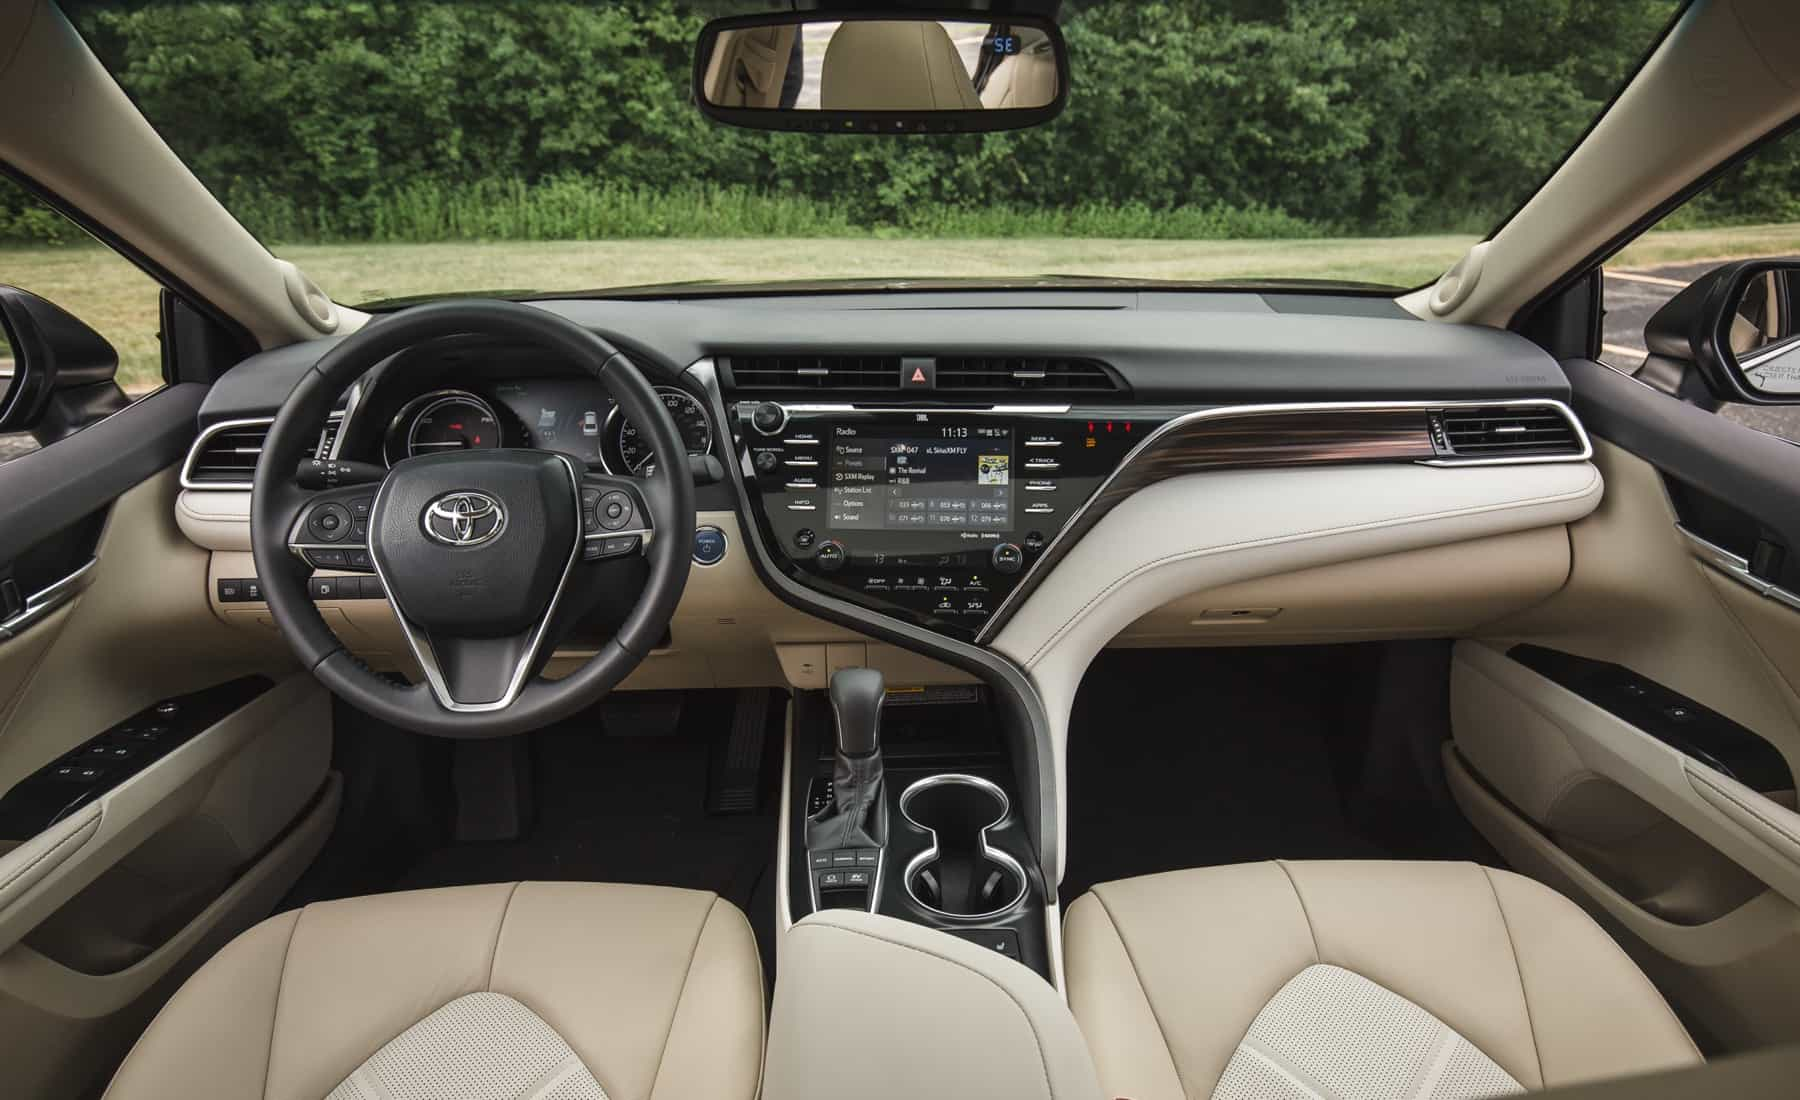 2018 Toyota Camry Hybrid XLE Interior Dashboard (Photo 18 of 41)